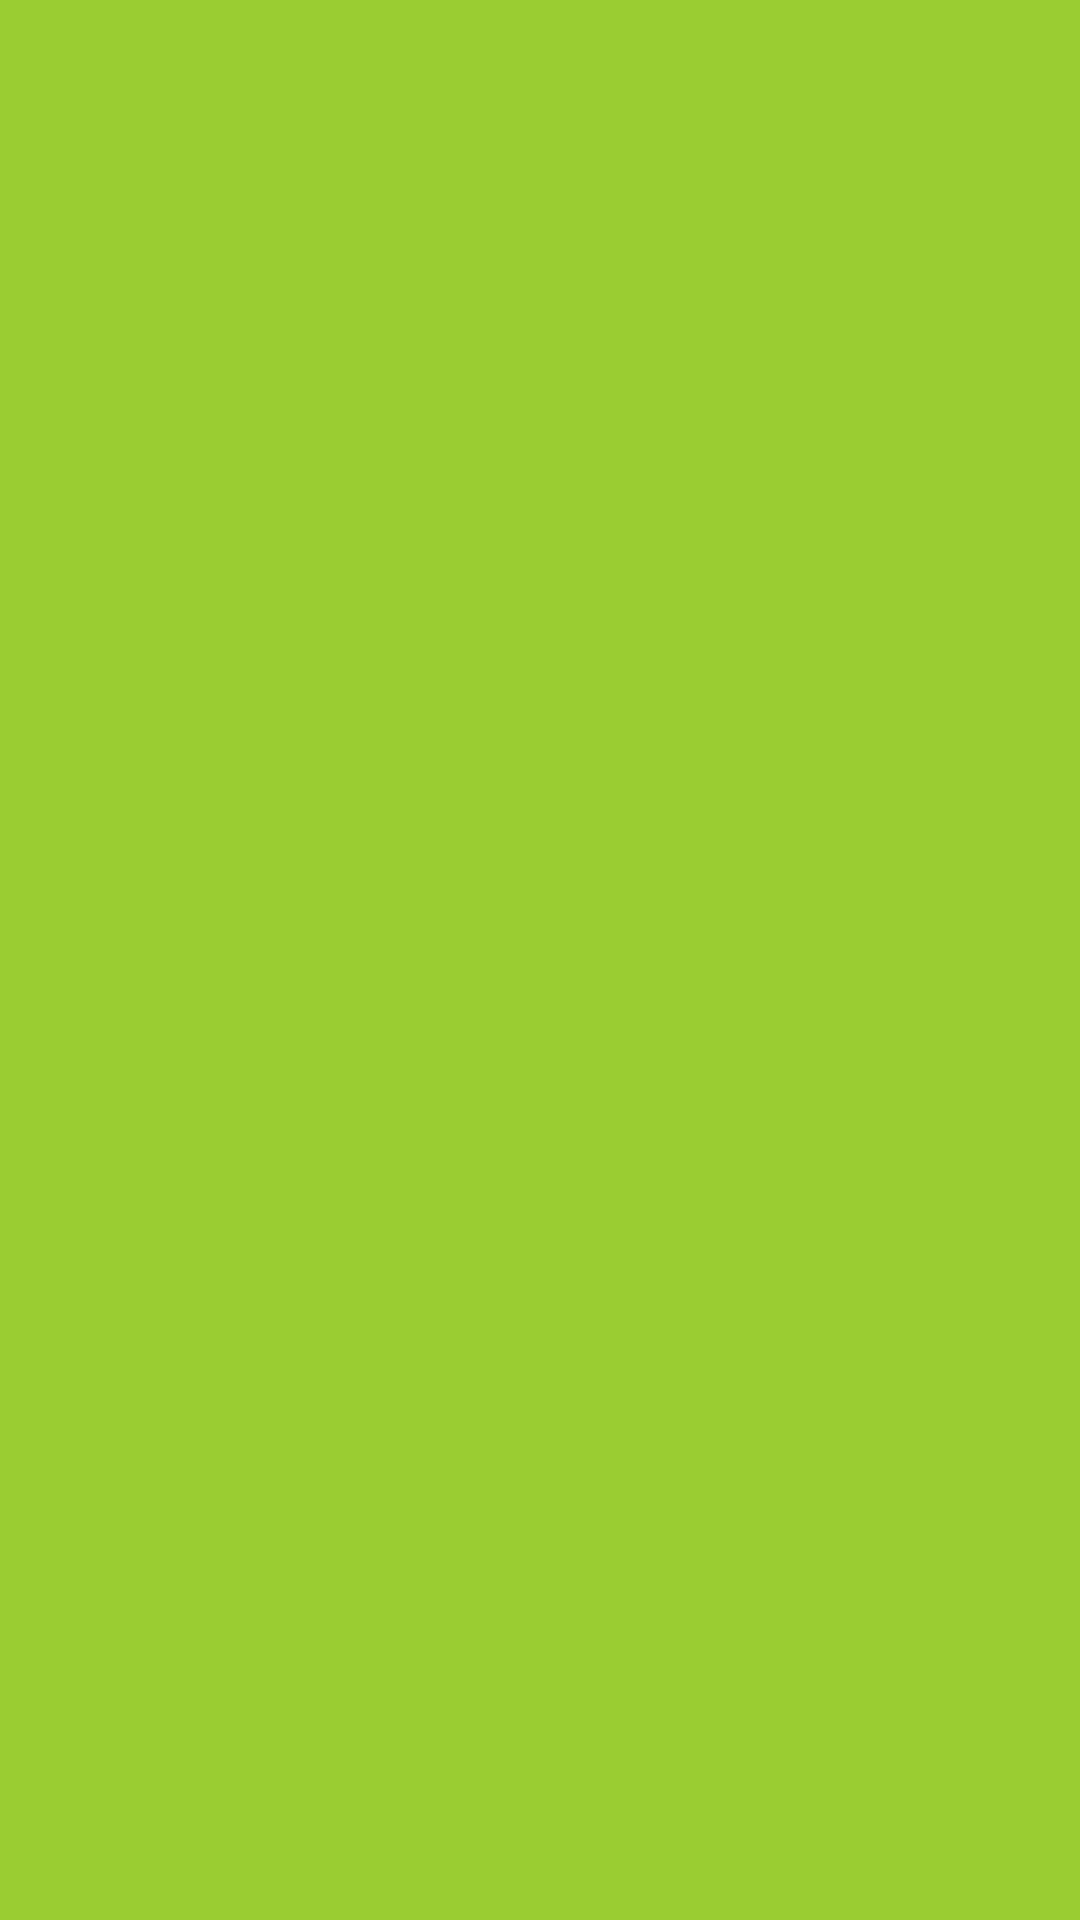 1080x1920 Yellow-green Solid Color Background